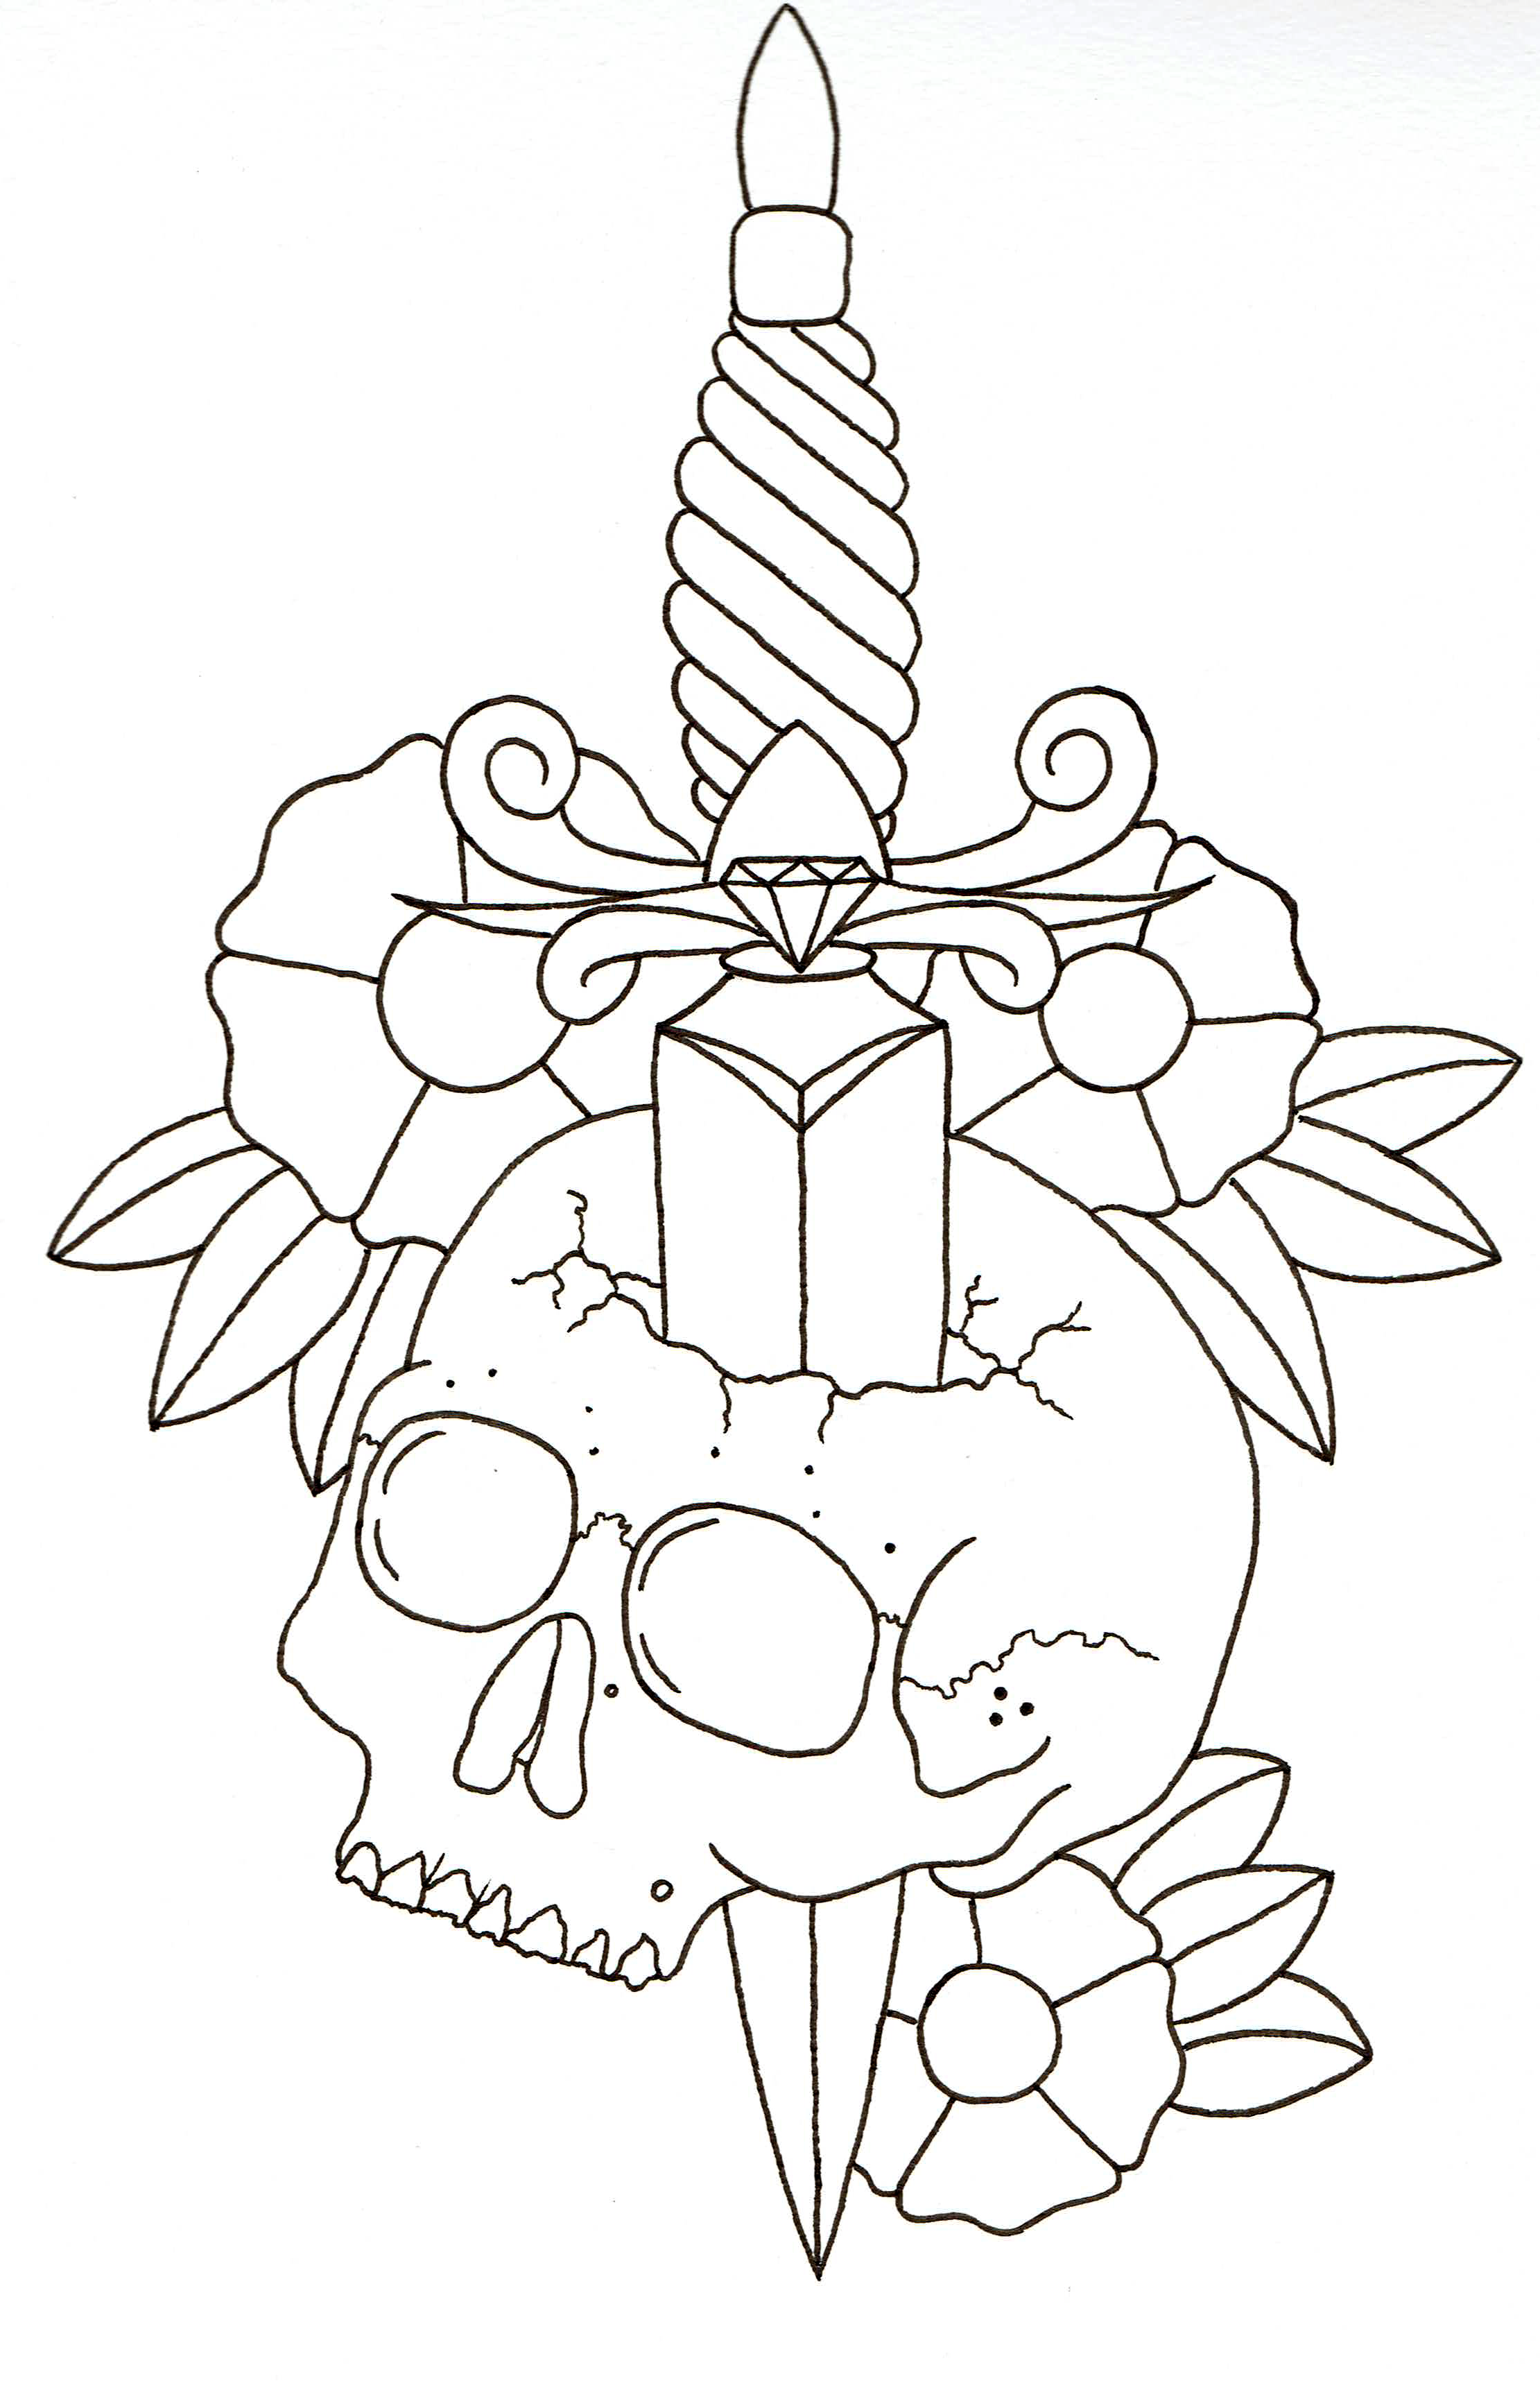 Skull Line Drawing Tattoo : Dagger in skull with flowers wip lines by beyondedge on